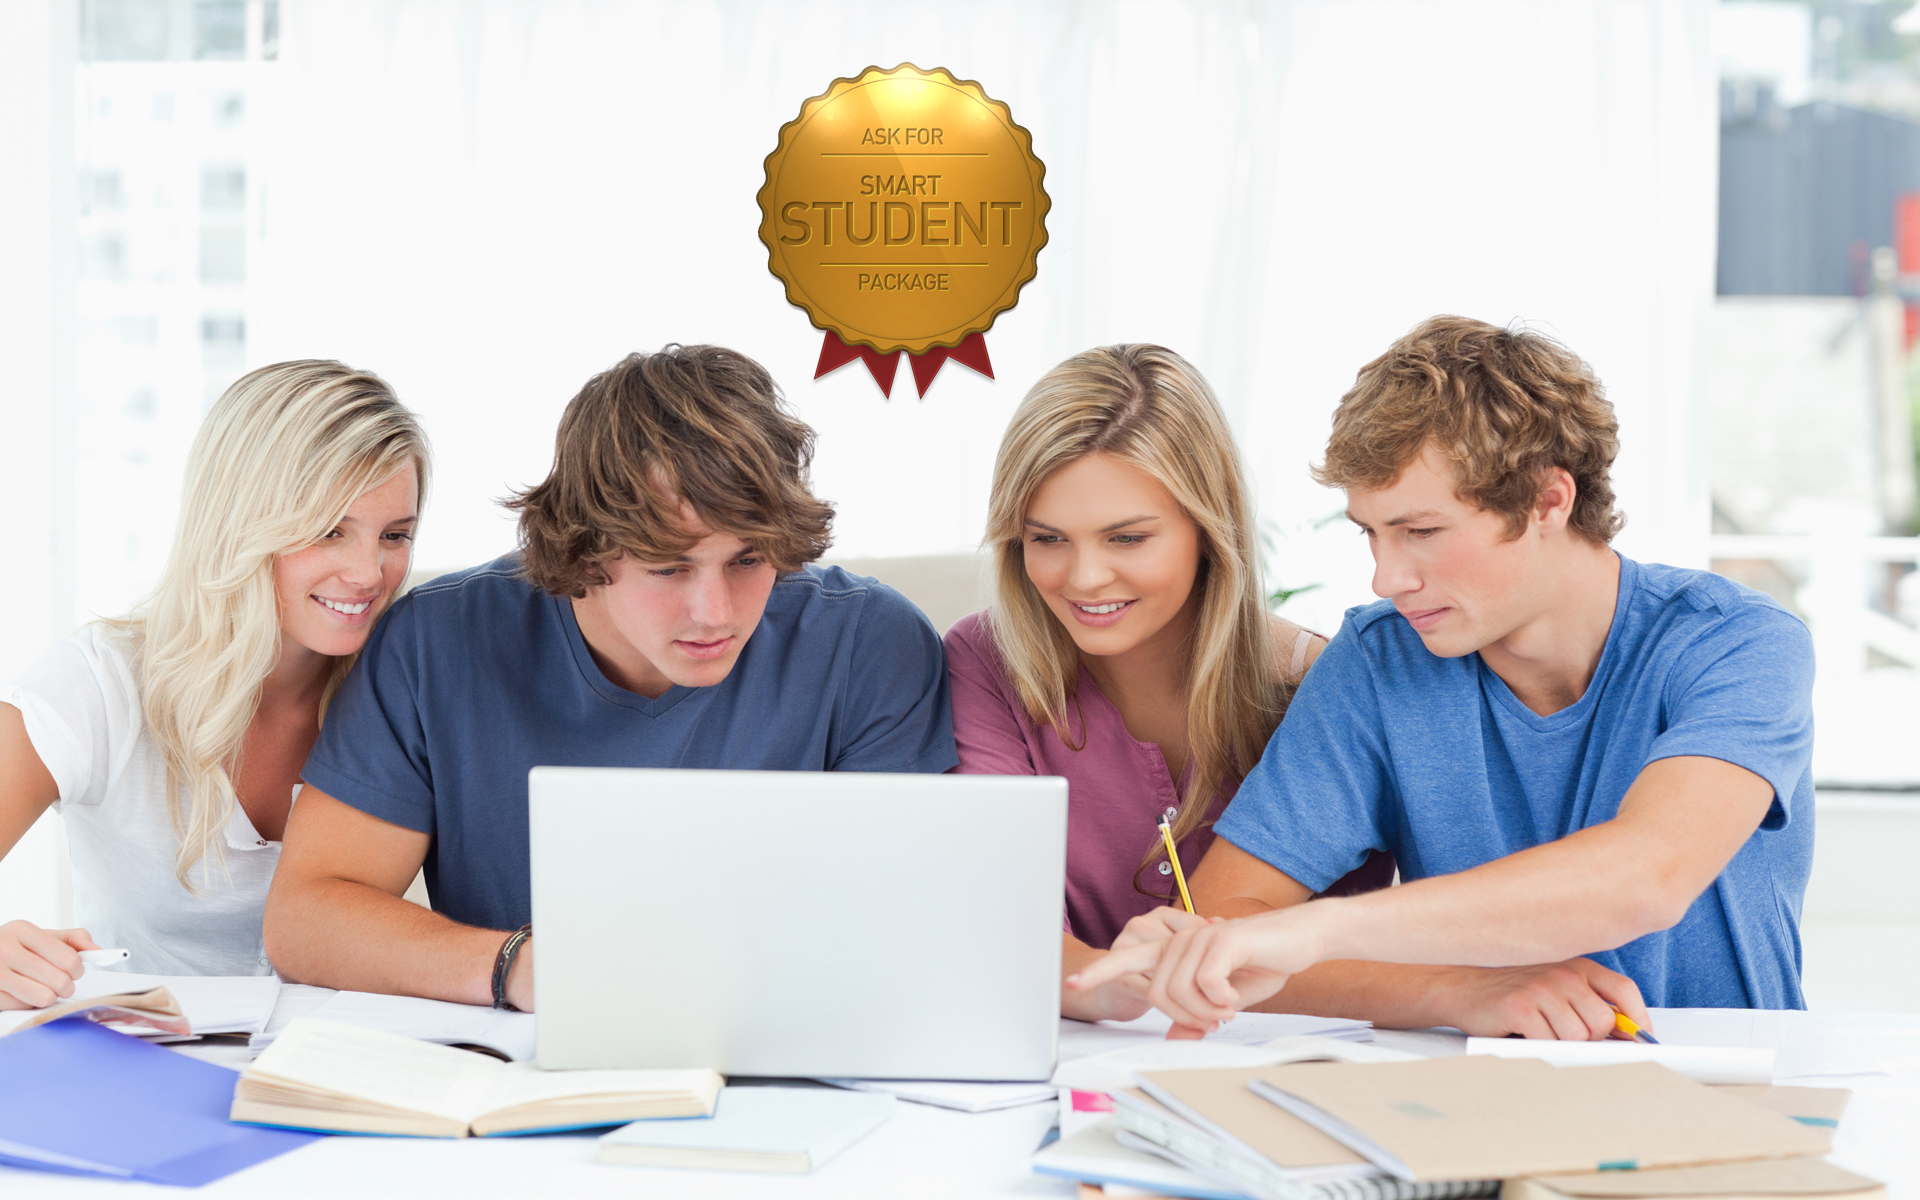 Coursework Writing Service Best Dissertation Writing Services Thesis writers  for hire Essay custom uk We offer